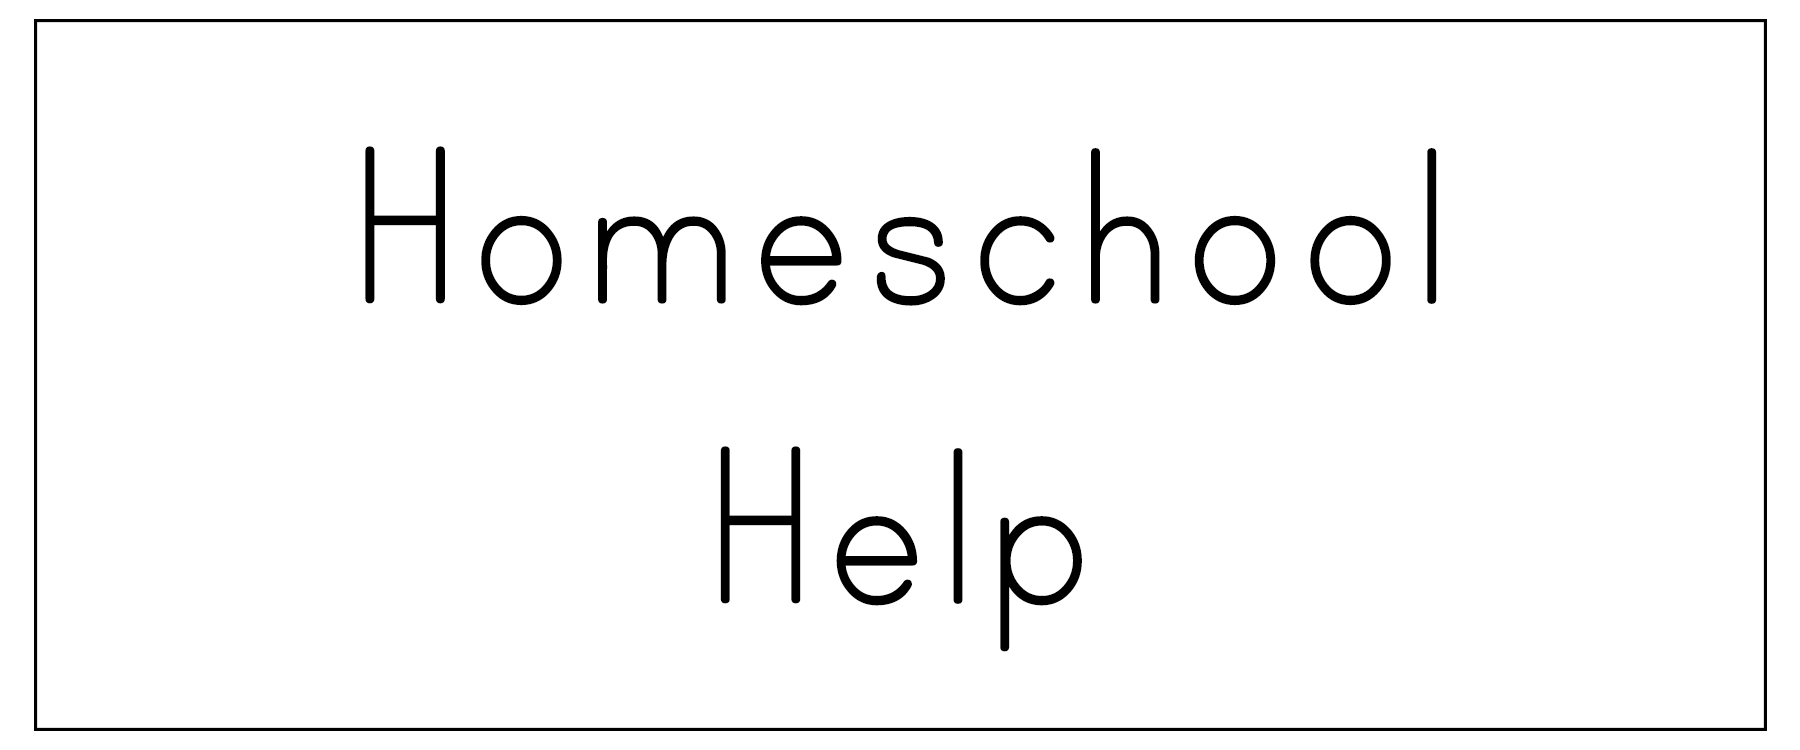 homeschool help.png